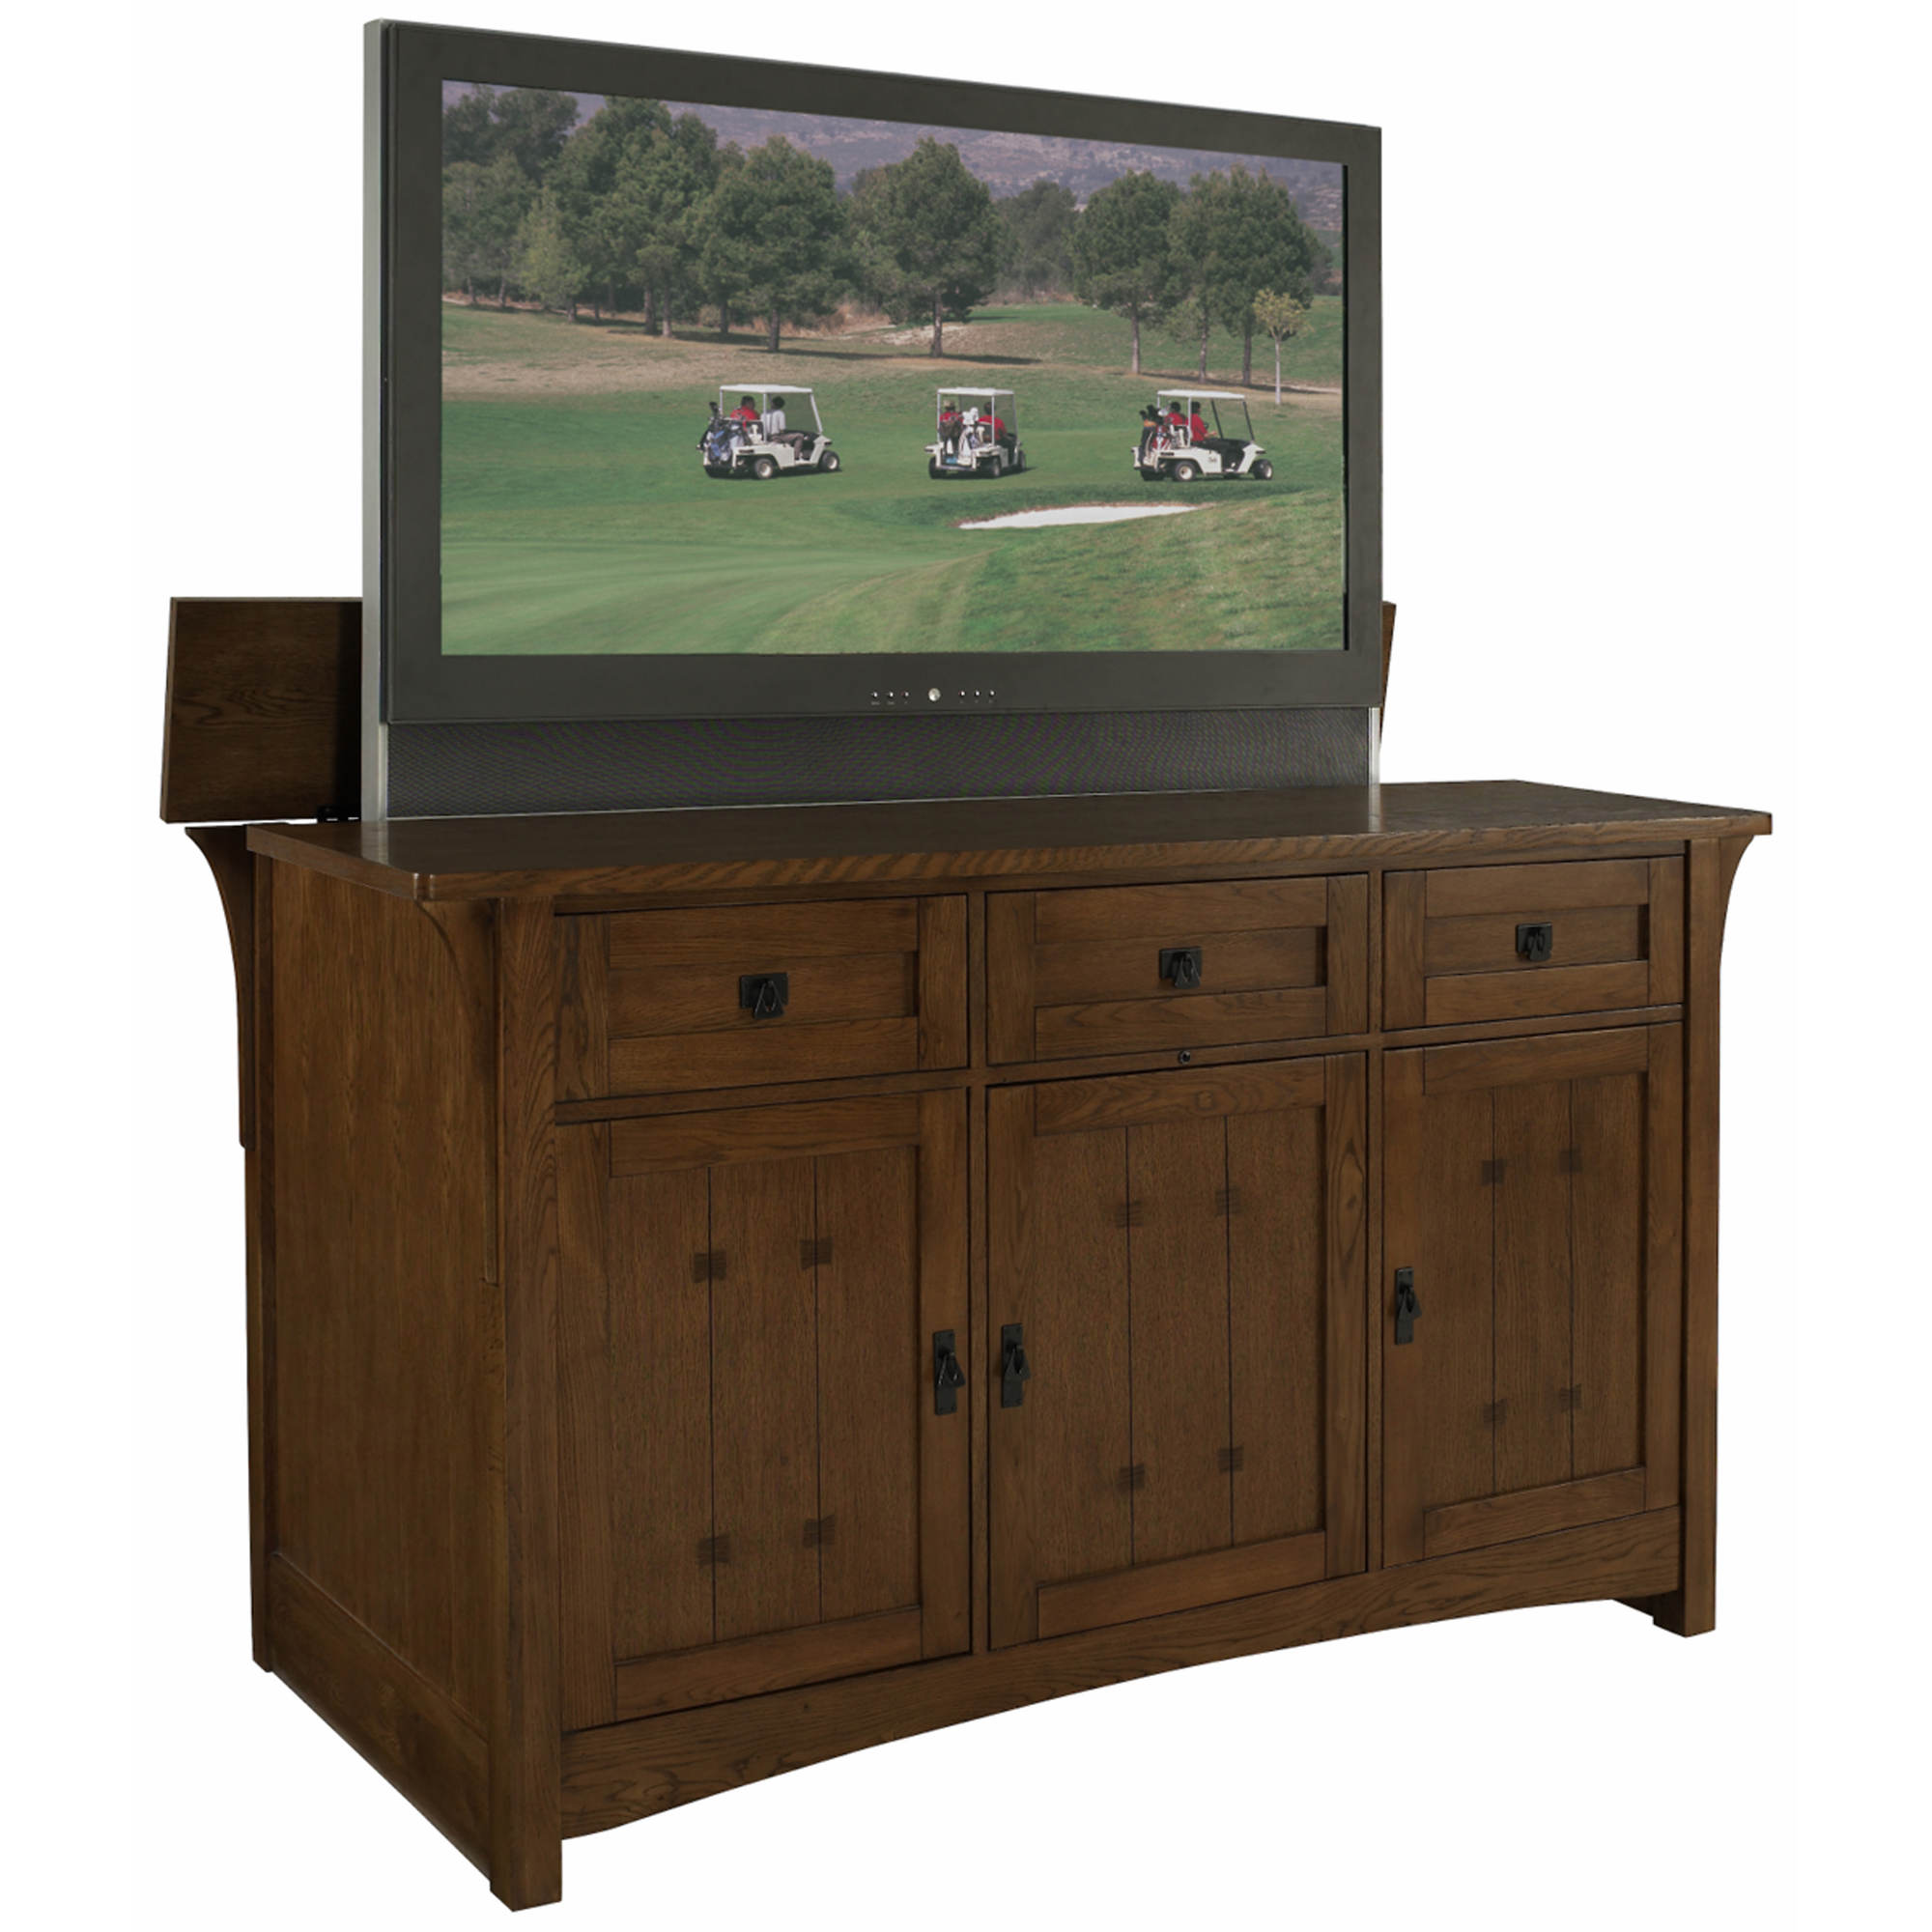 Craftsman Tv Lift Cabinet With Motorized Lift Bjs